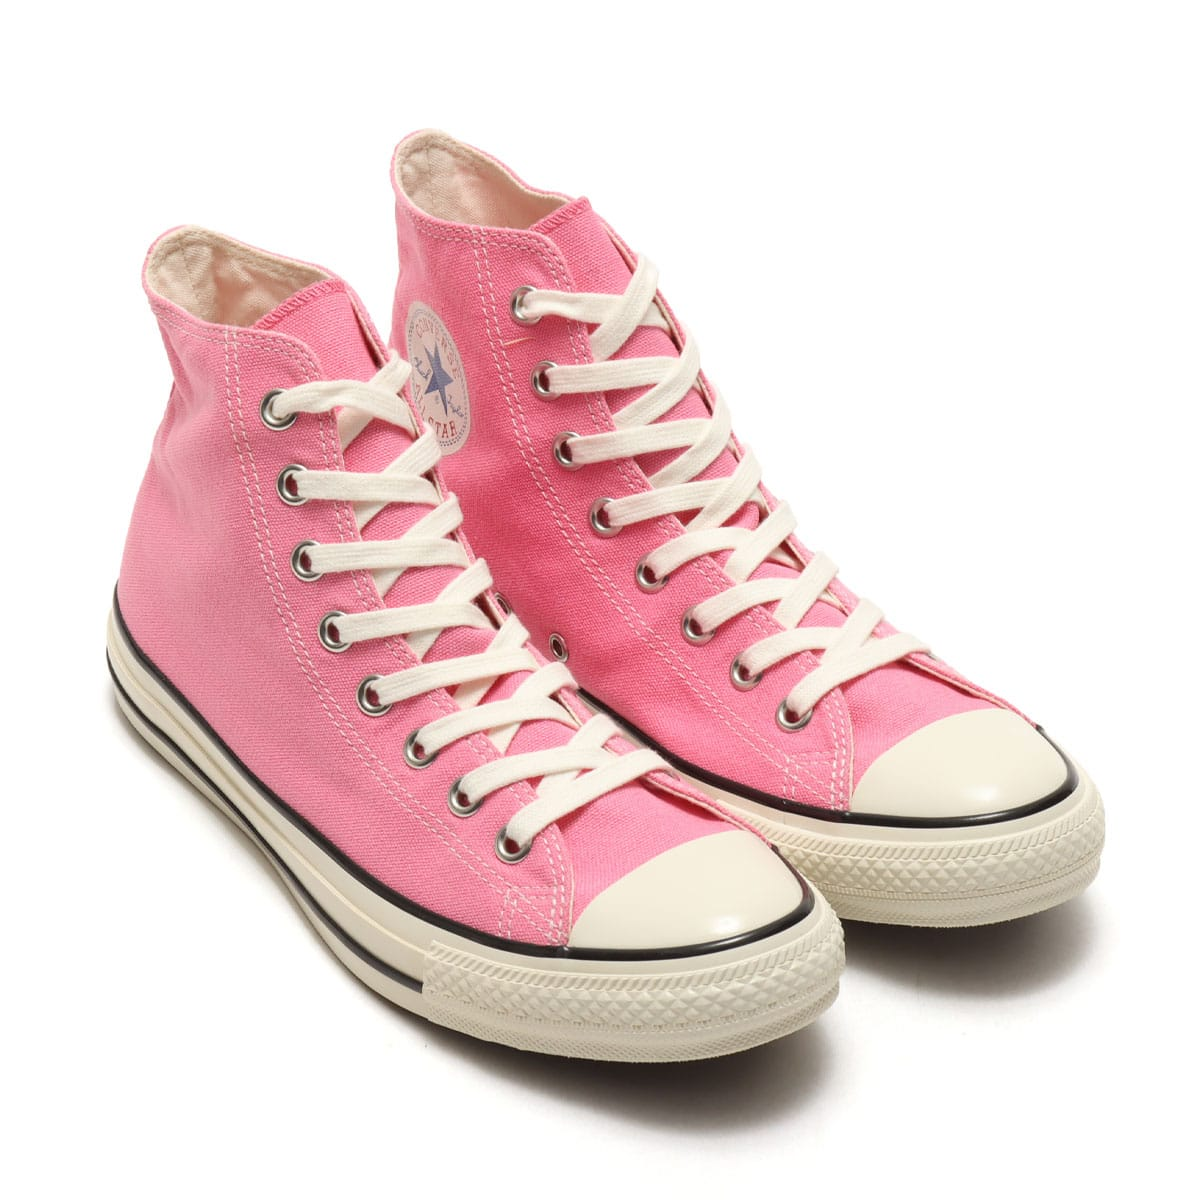 CONVERSE ALL STAR US COLORS HI PINK 21SS-I_photo_large